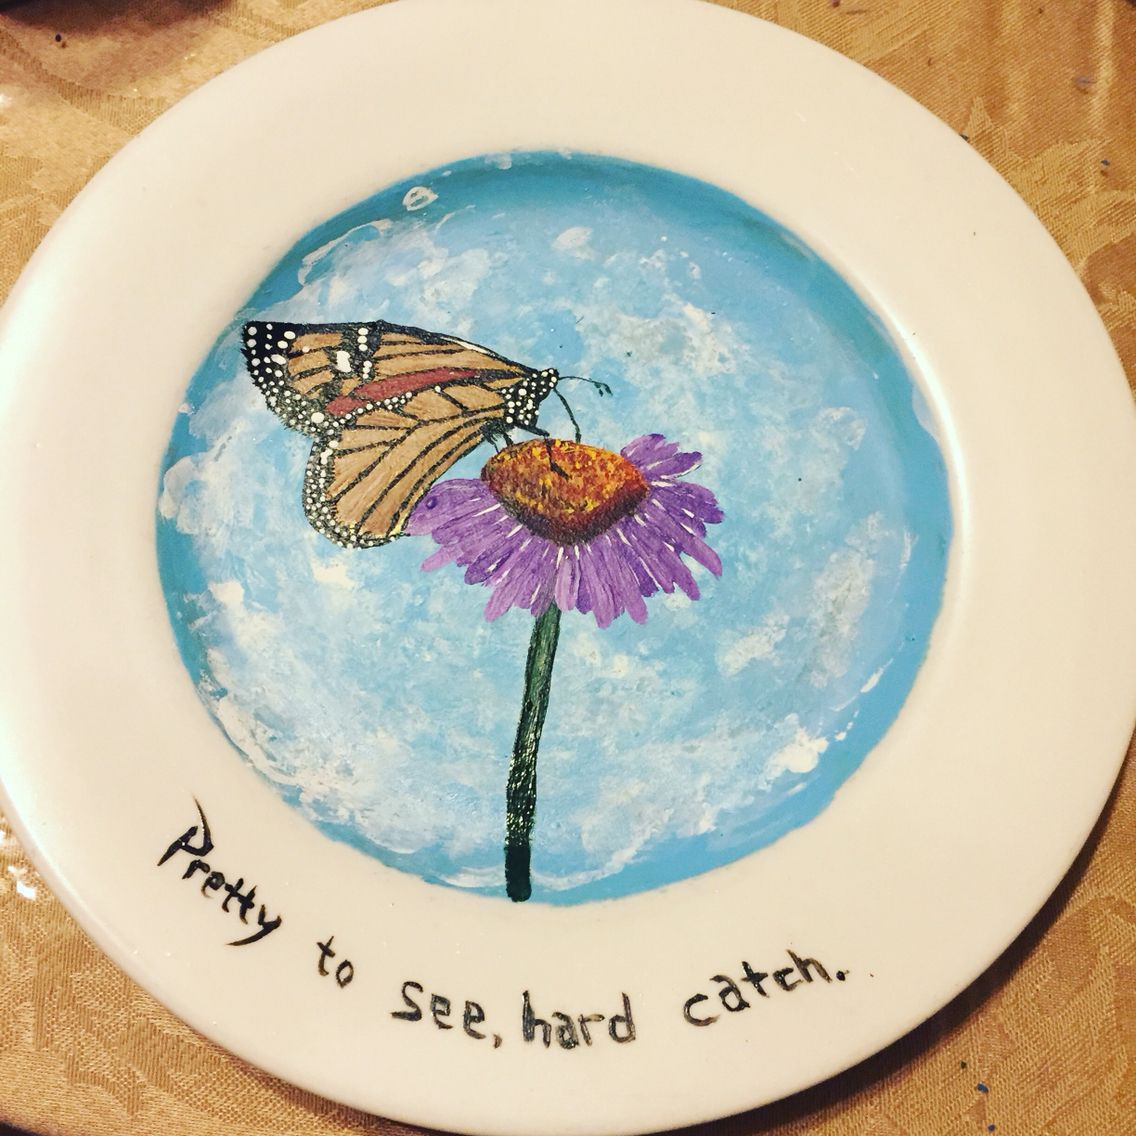 Painting Plates Using Acrylic Paint Plates Using Acrylic Paint Home Crafts